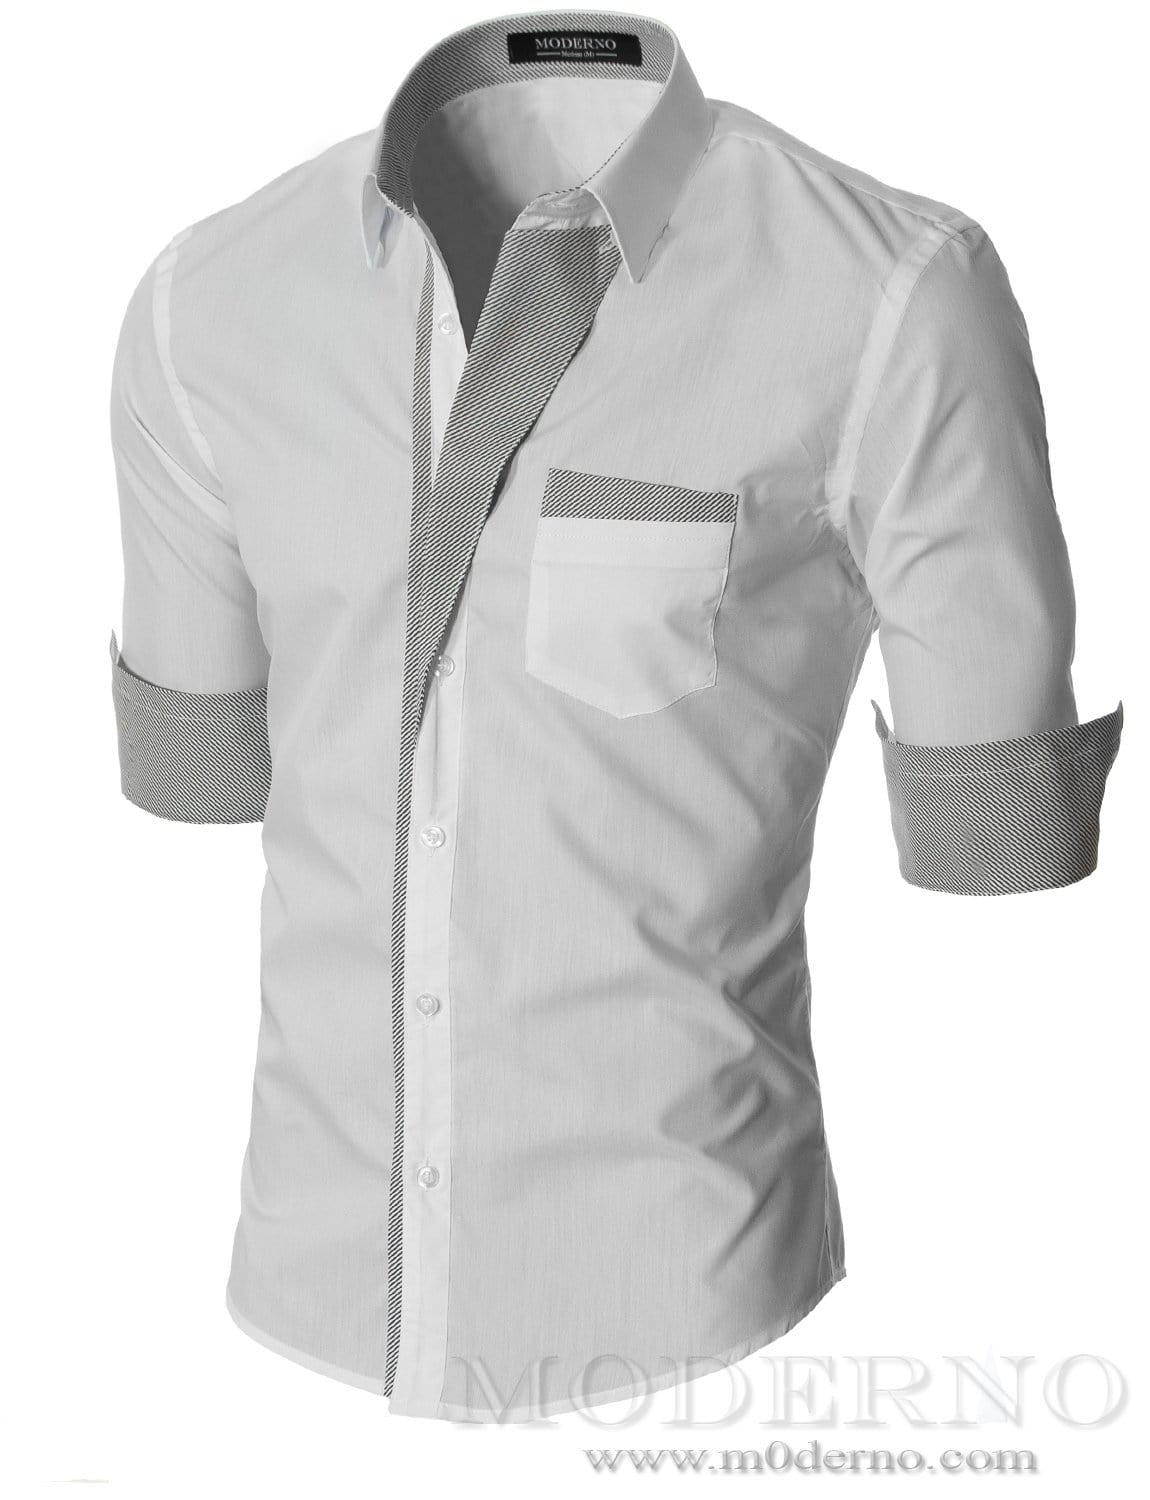 Slim fit mens white button down shirt by moderno vgds41ls for Mens slim white shirt